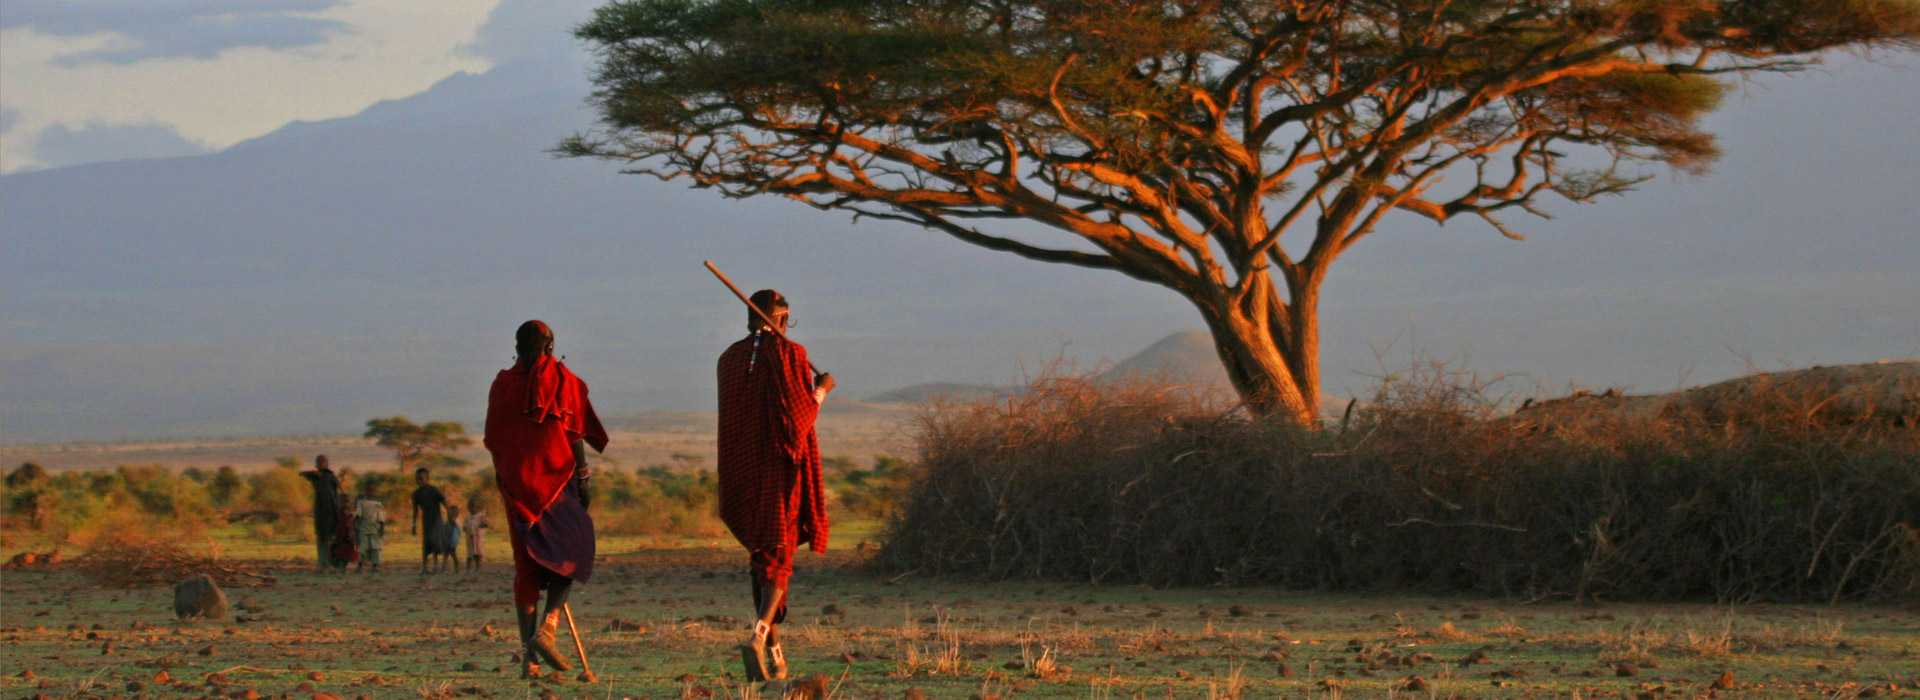 Masai Warriors At Sunset In The Mara